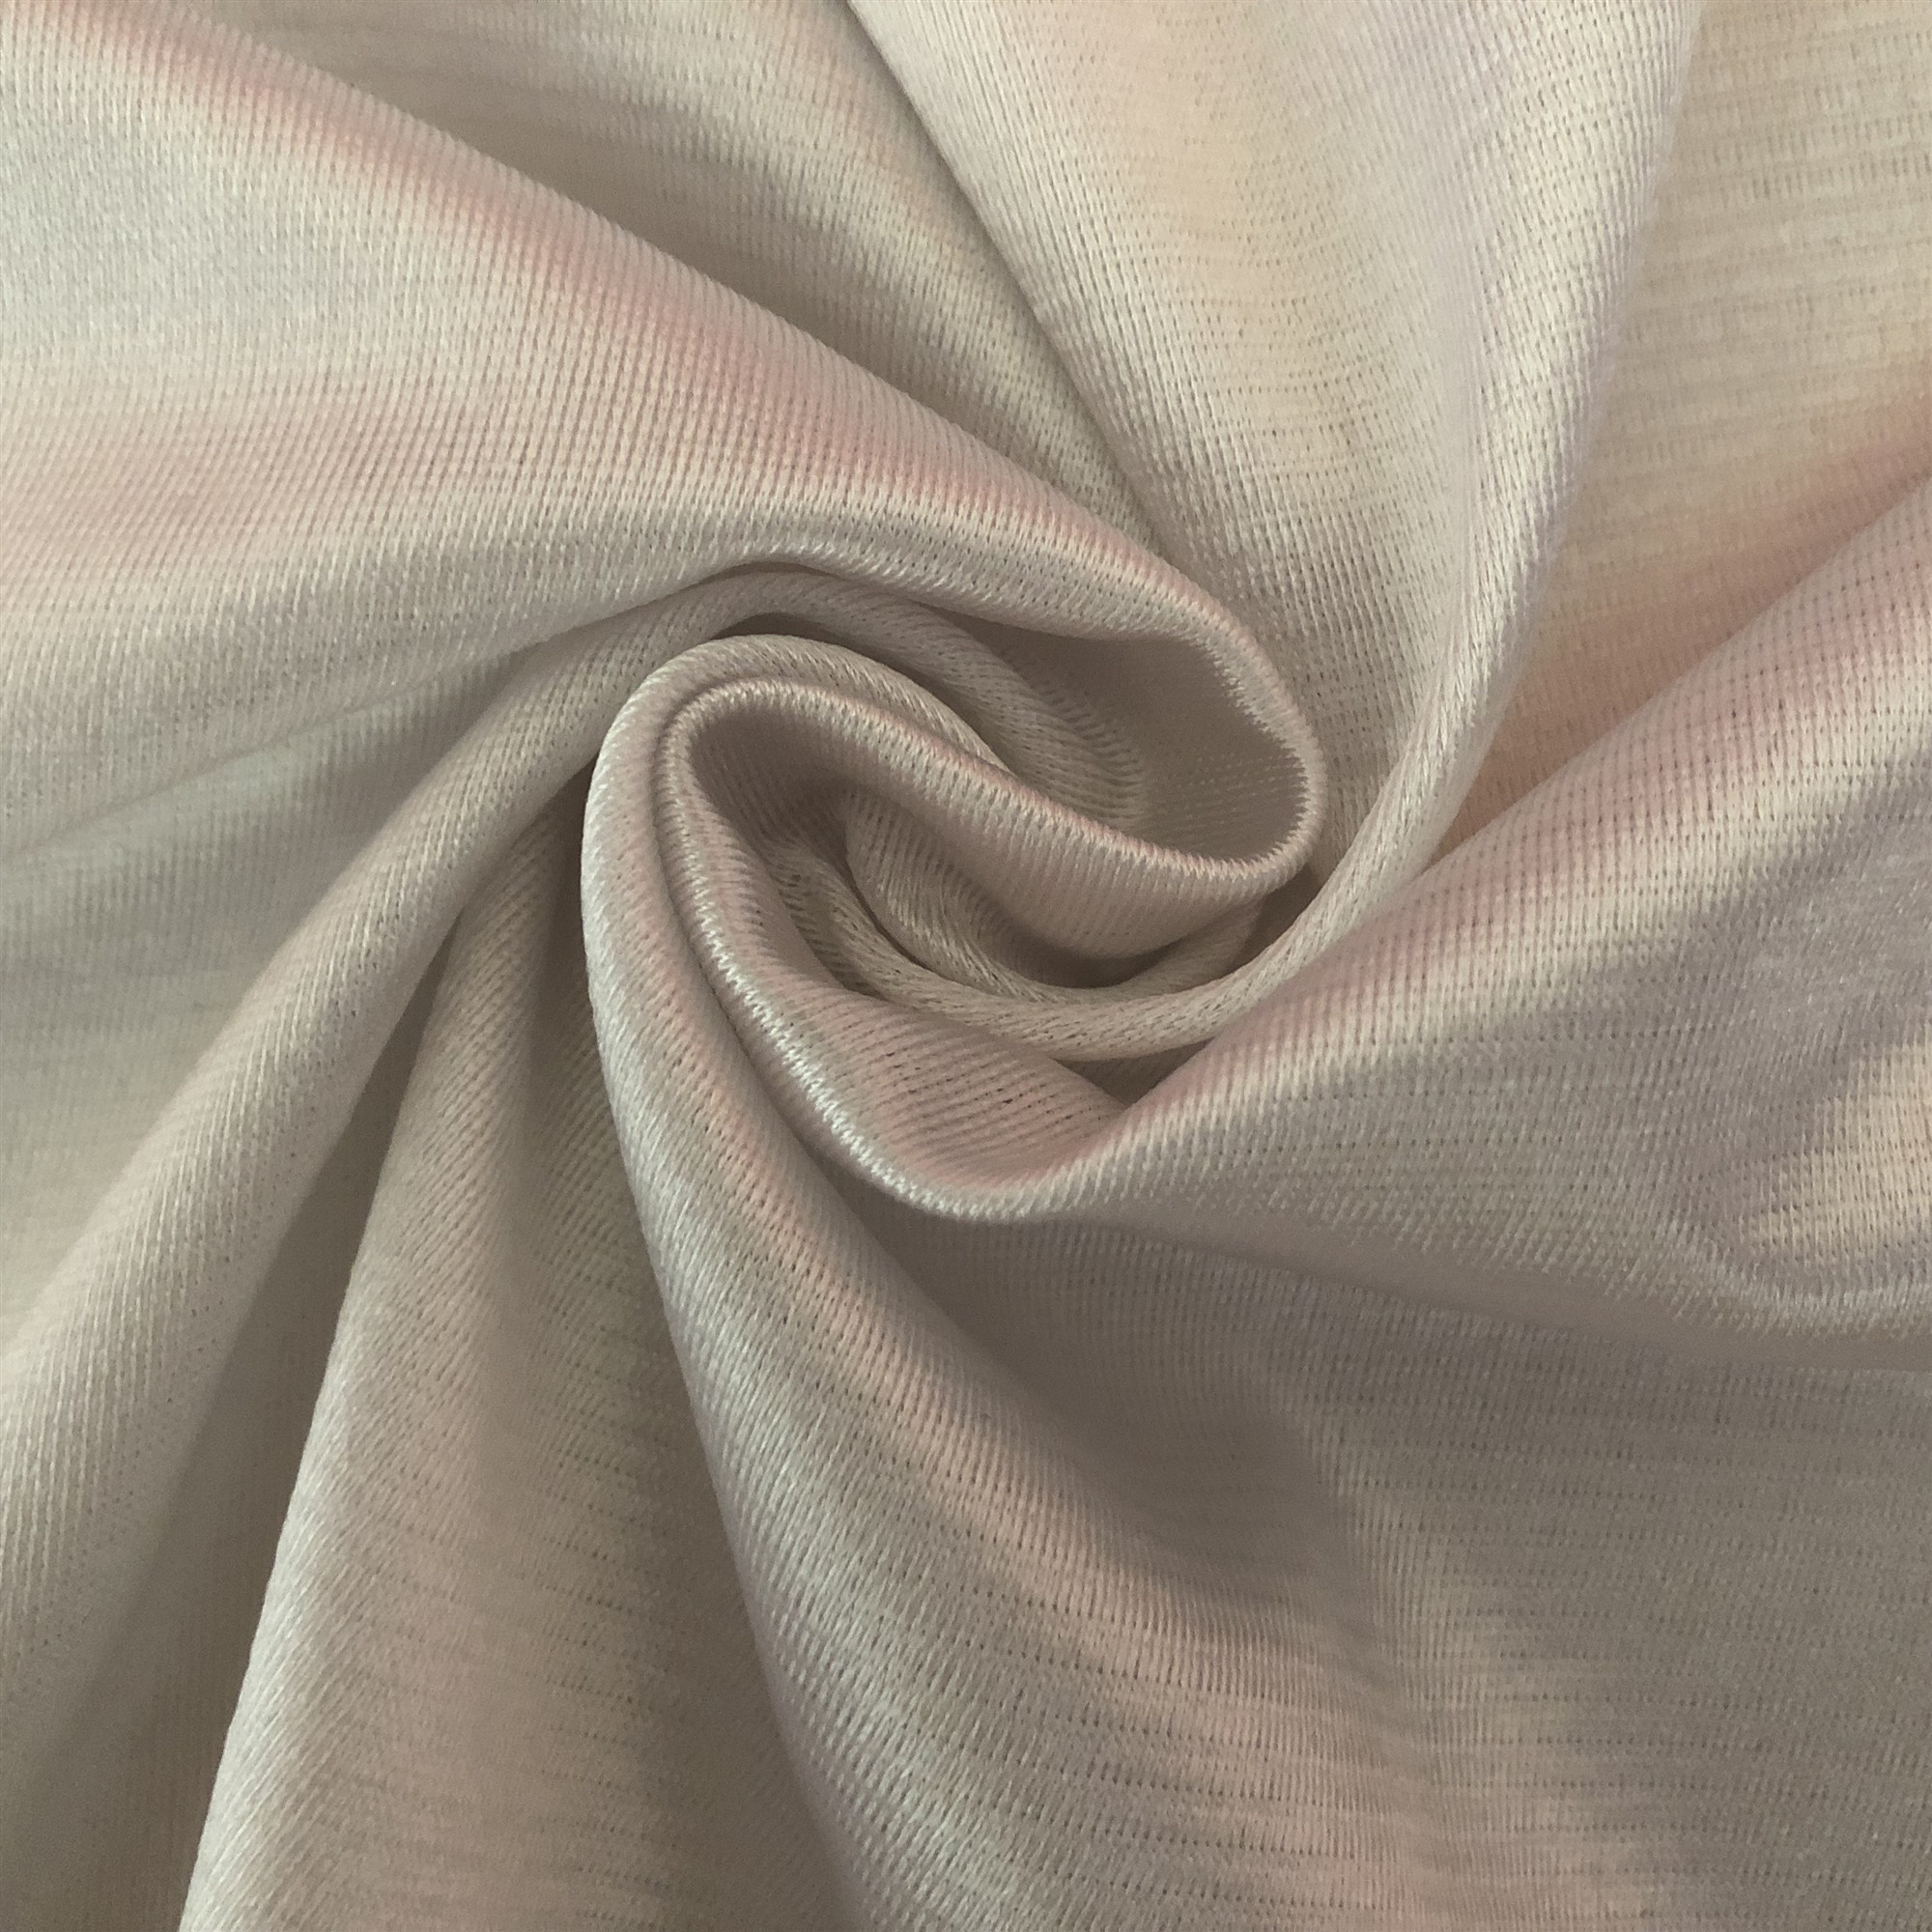 100% Polyester tricot warp knitted flame retardant fabric for garment